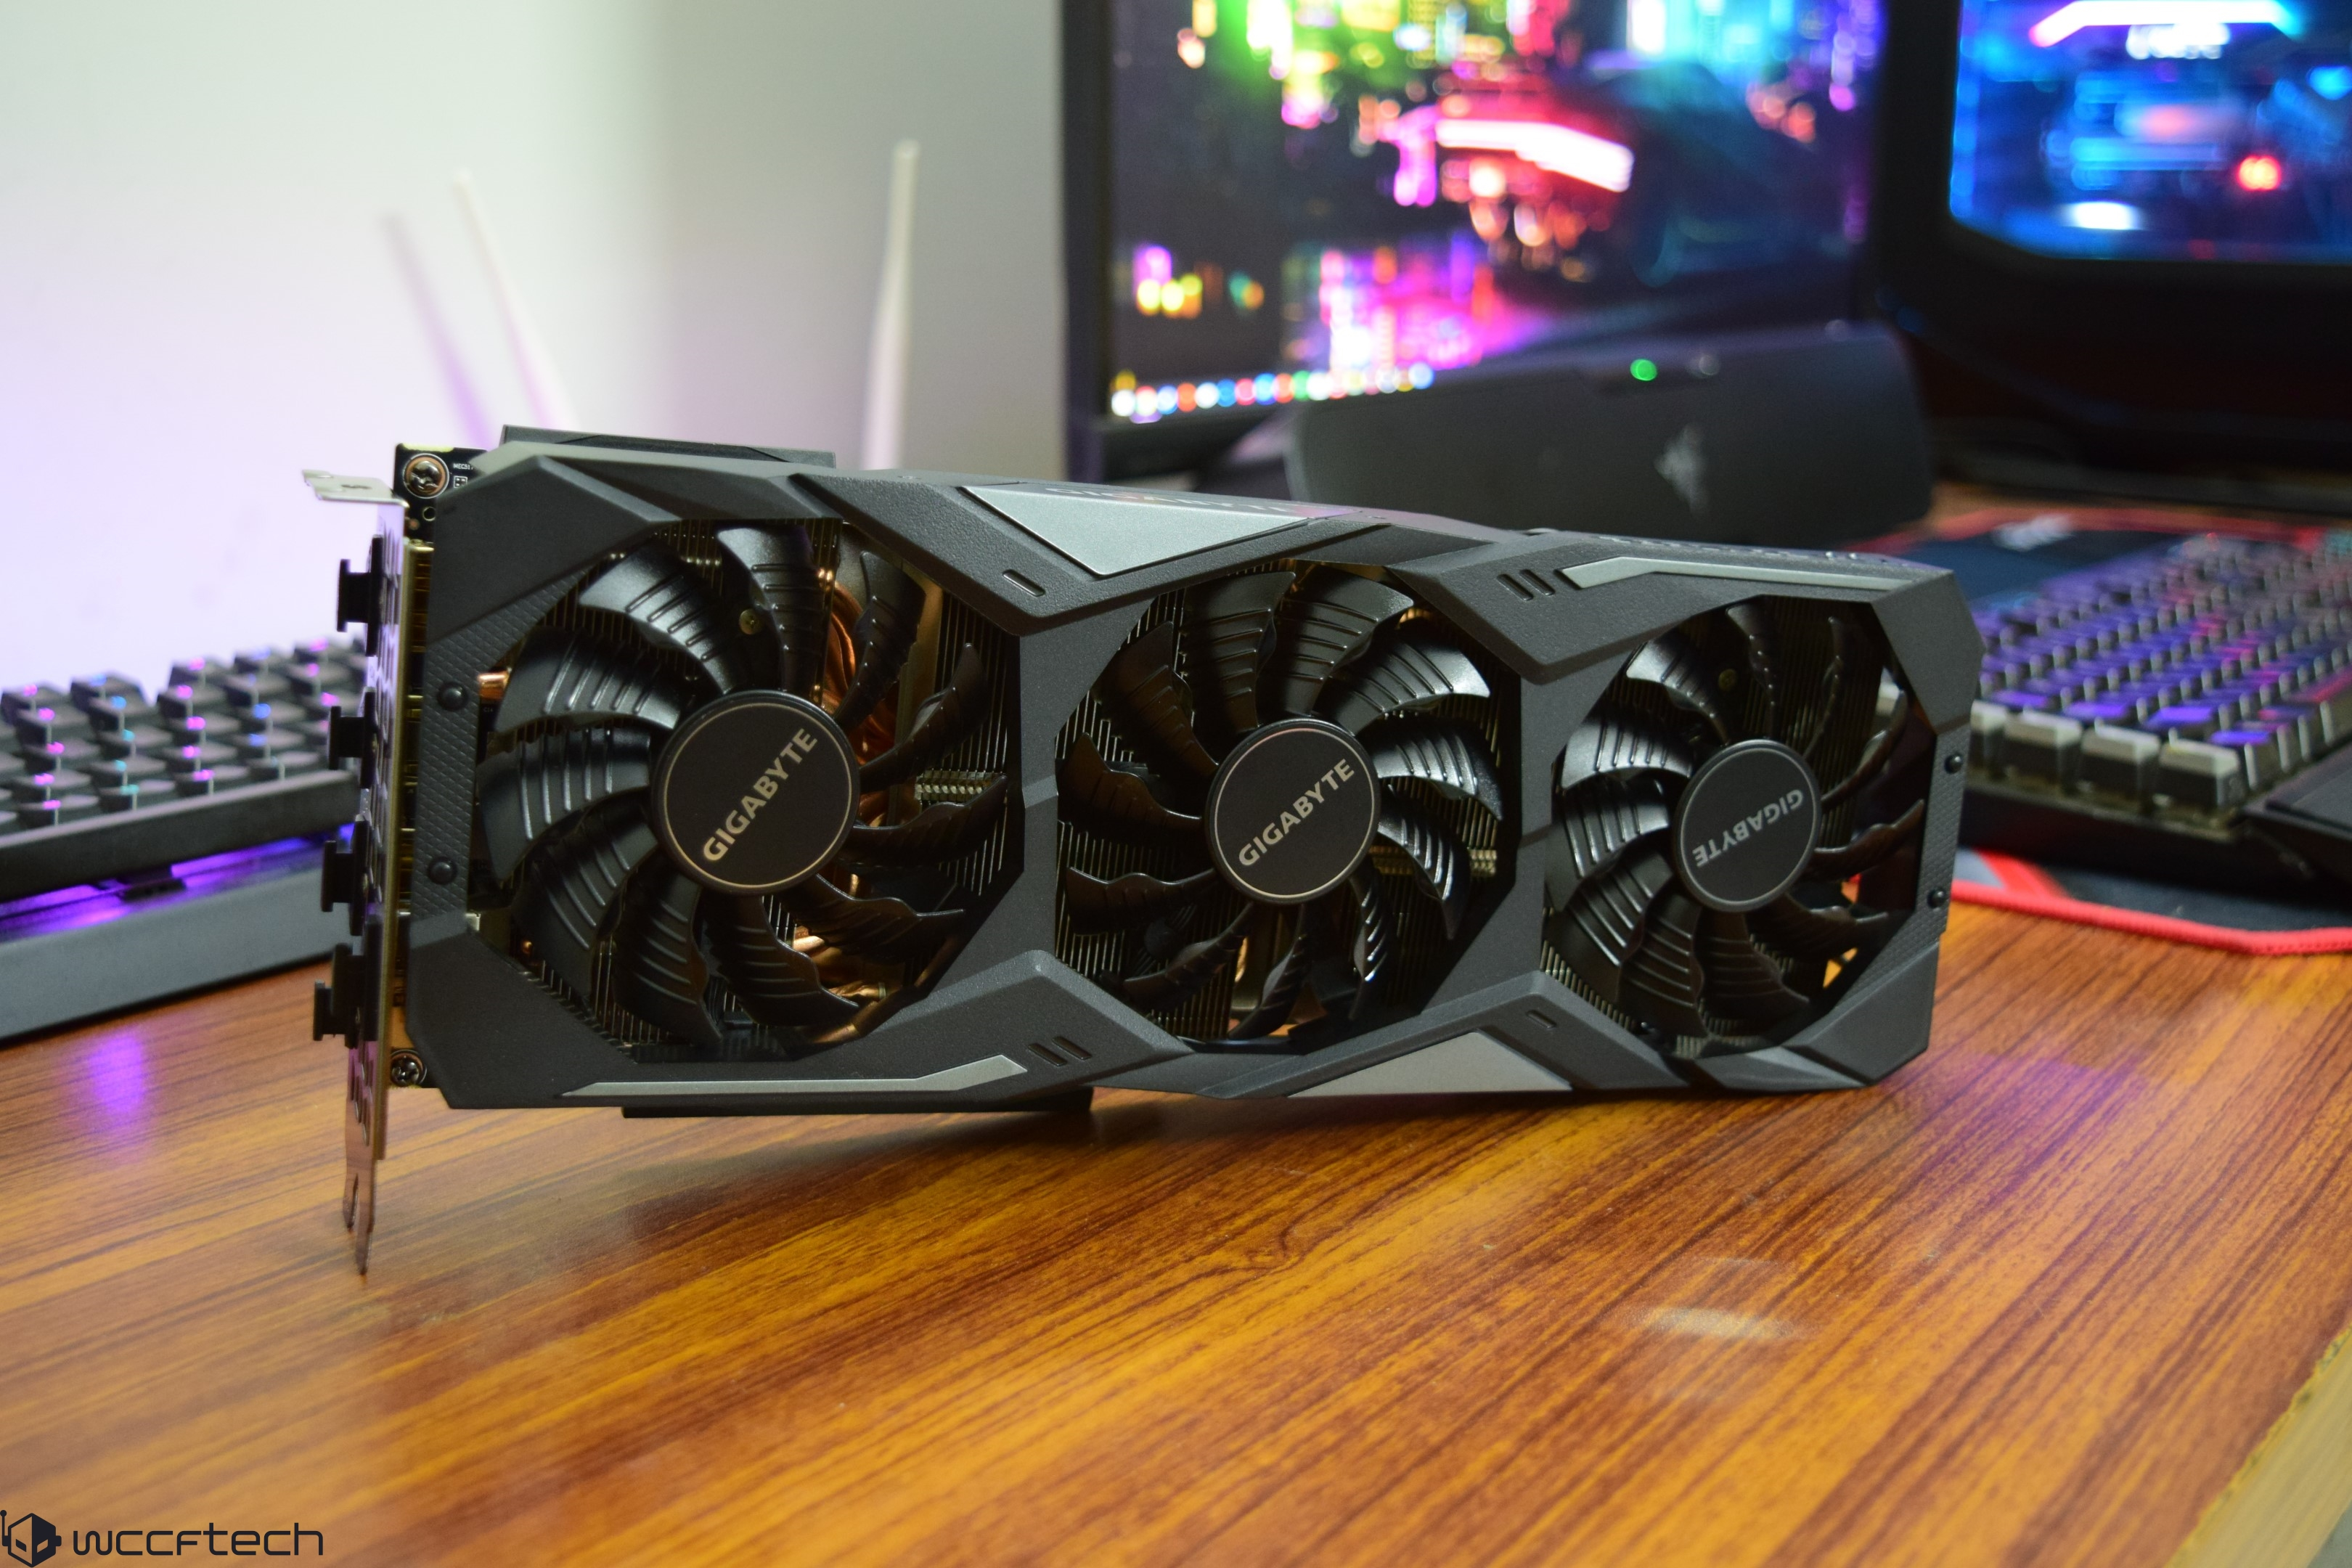 Gigabyte GeForce RTX 2070 SUPER Gaming OC 8 GB Graphics Card Review